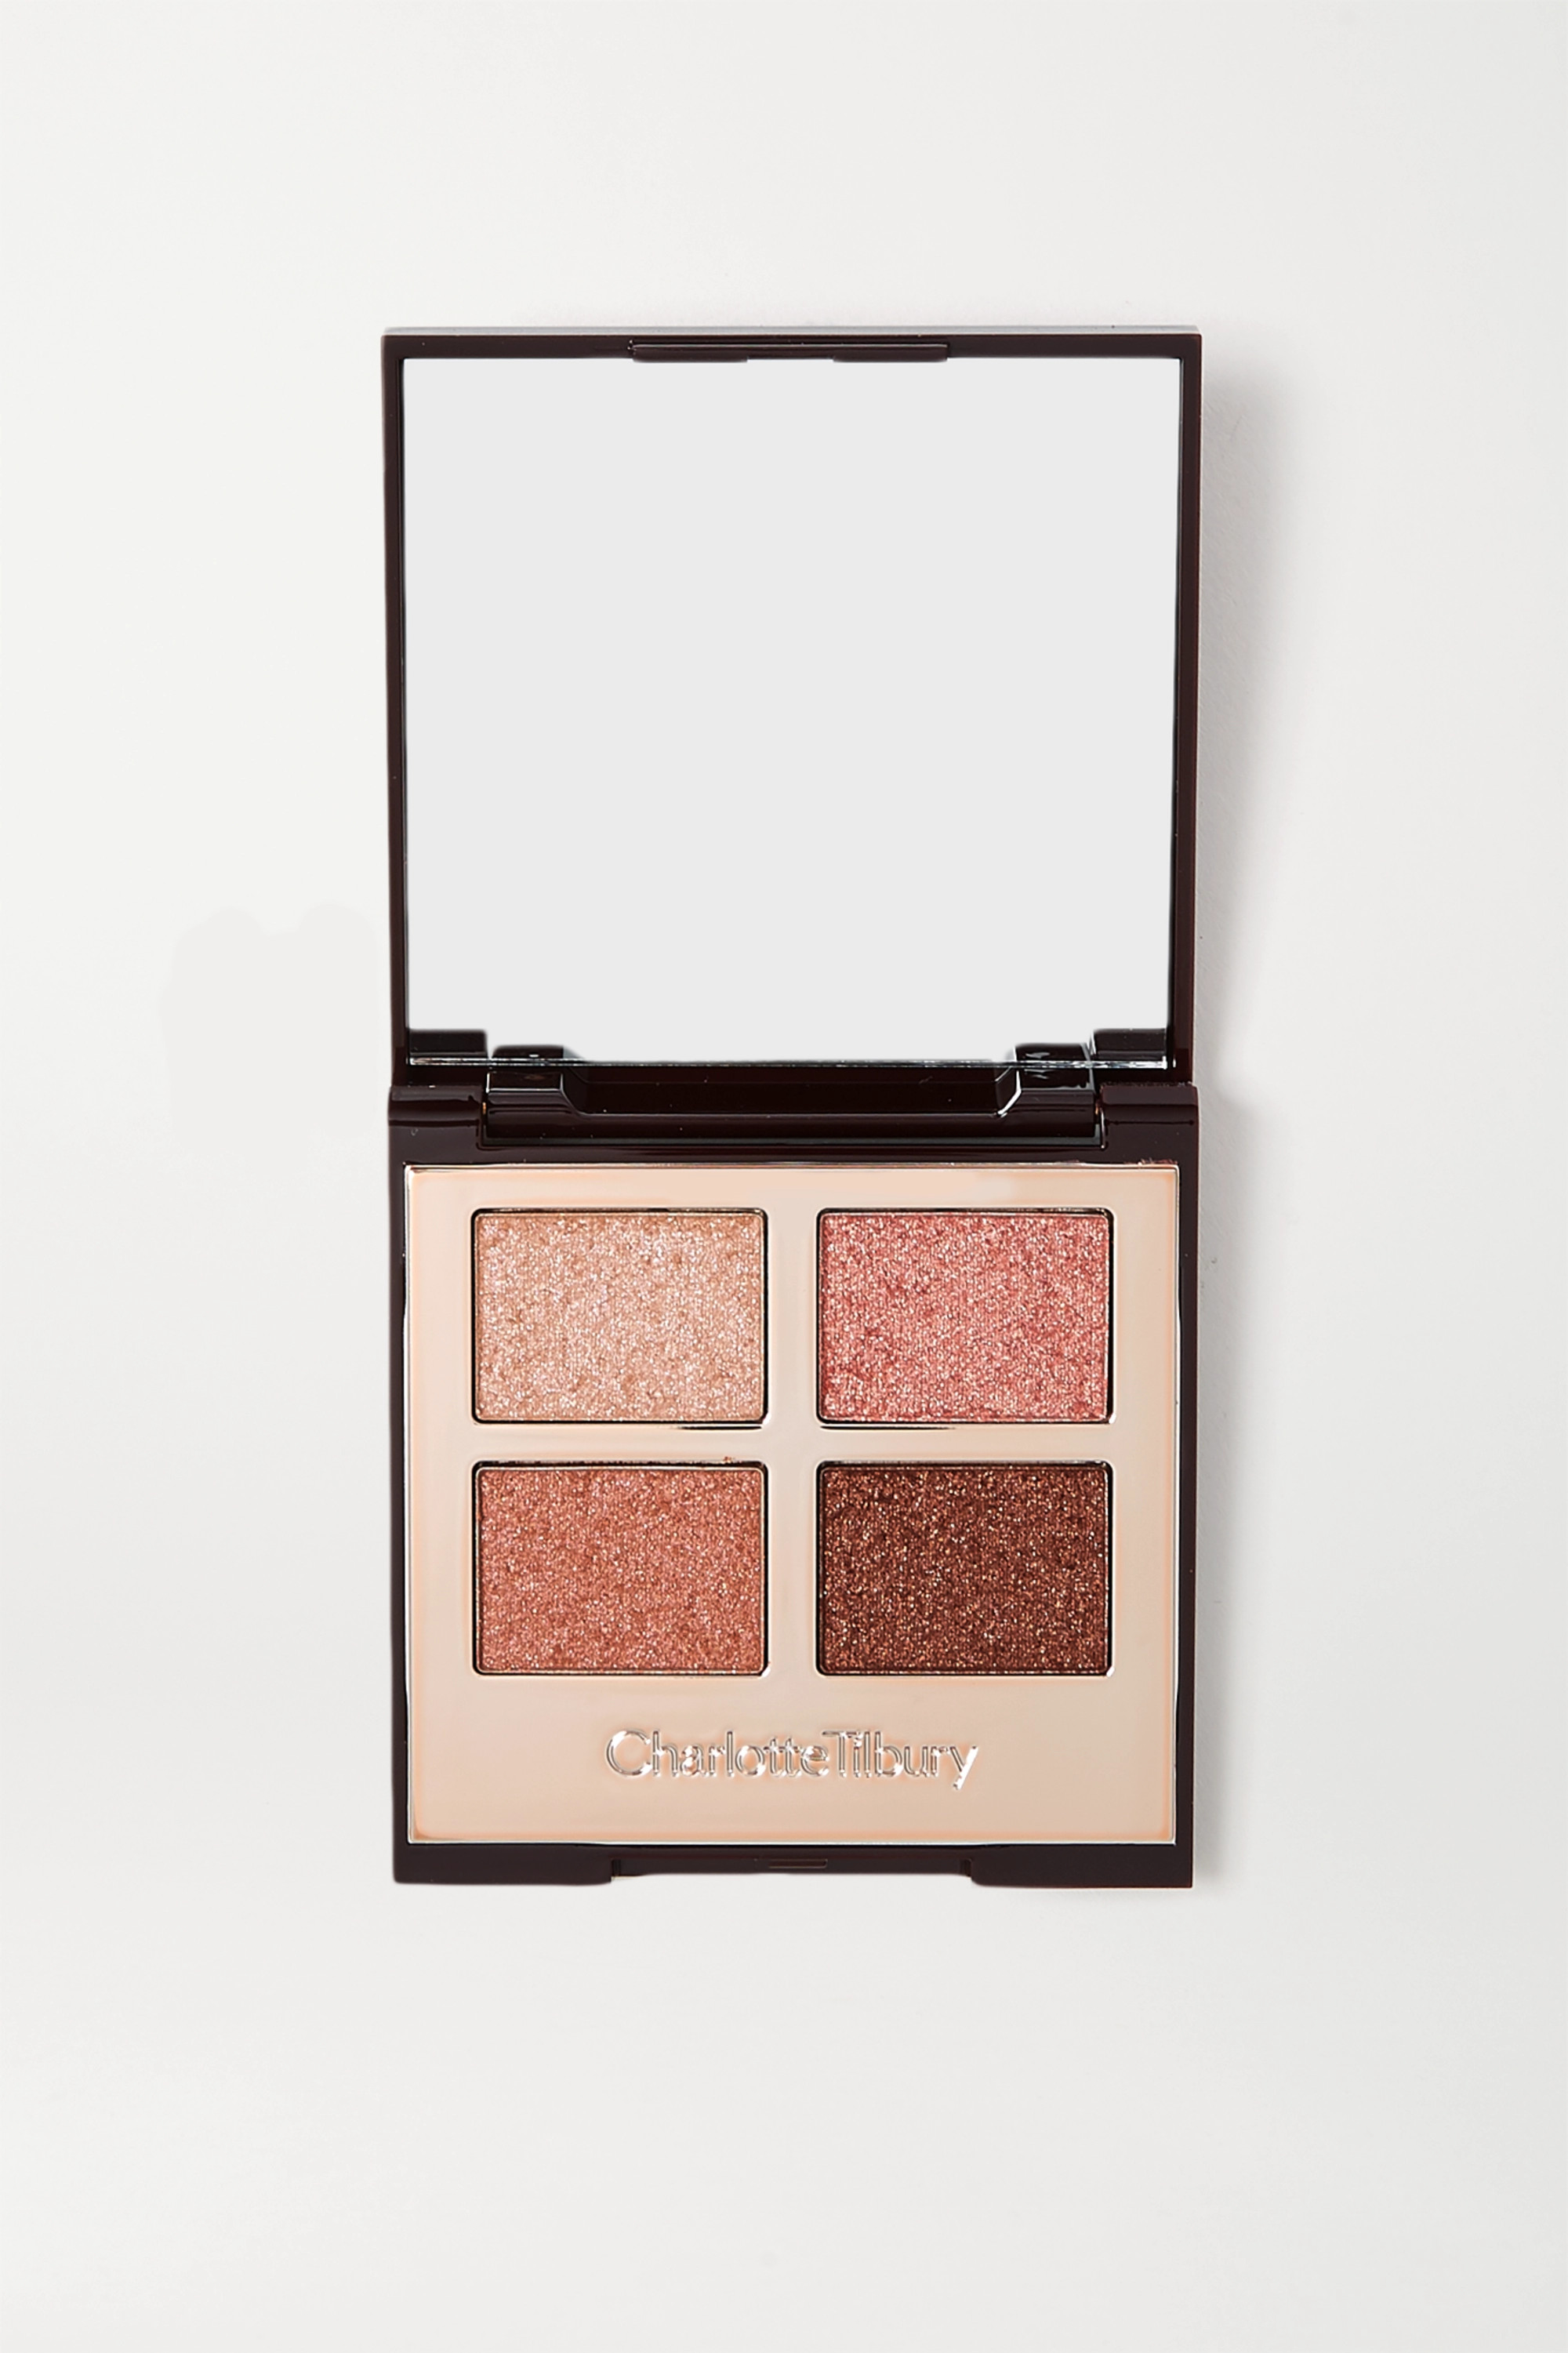 Charlotte Tilbury Luxury Palette of Pops Color-Coded Eye Shadows - Pillow Talk